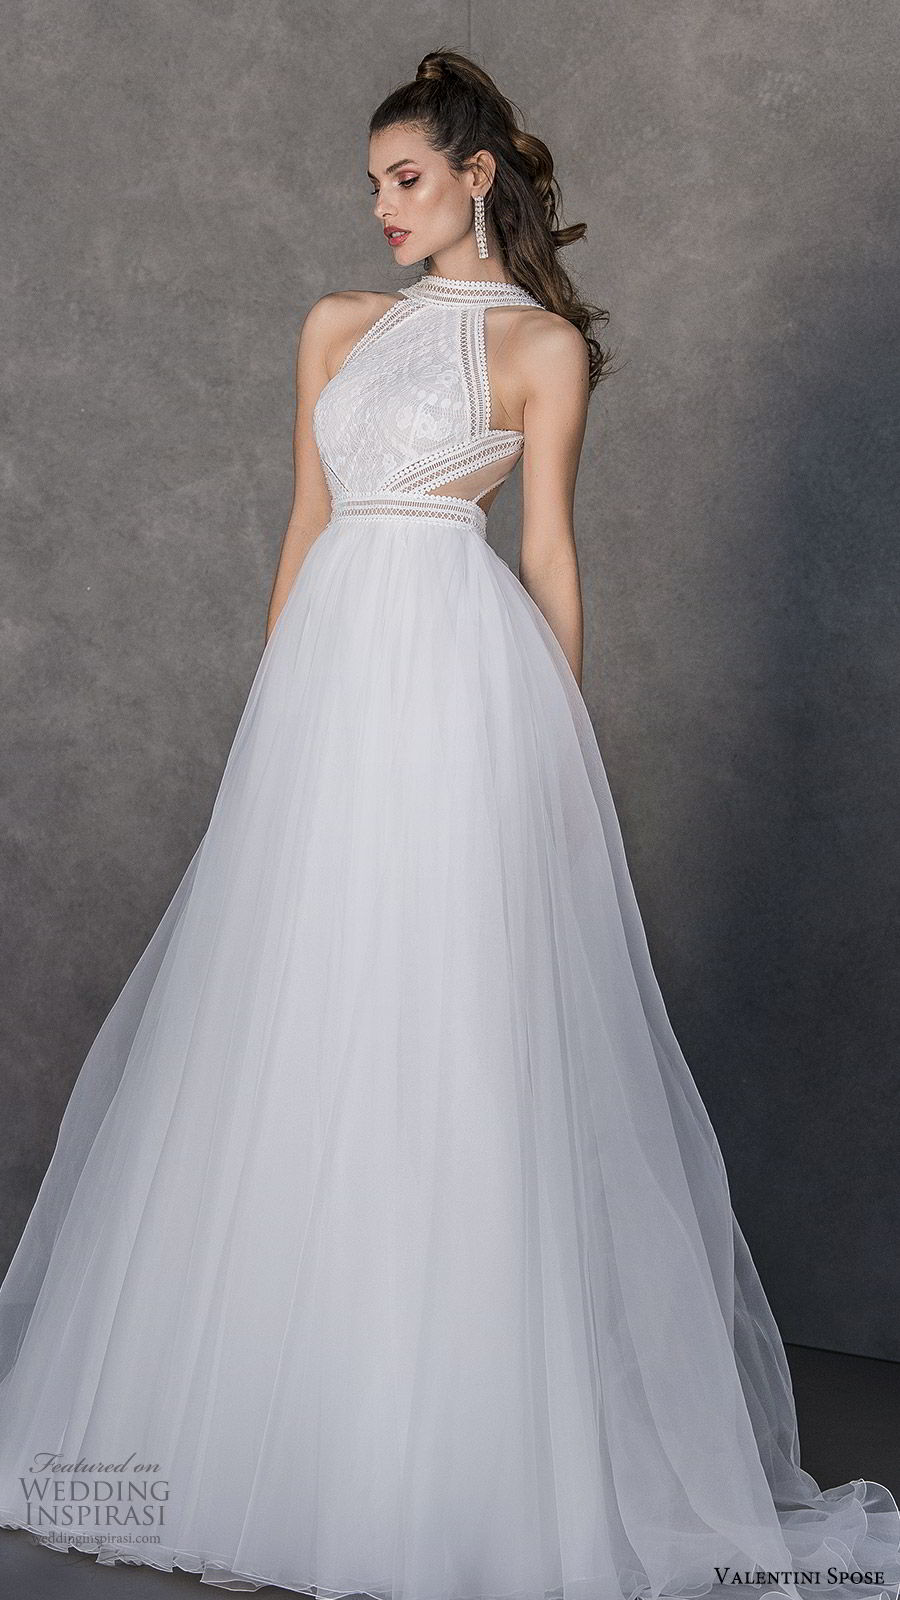 valentini spose spring 2020 bridal sleeveless halter neckline lace bodice a line ball gown wedding dress (10) cutout back chapel trrain modern romantic mv